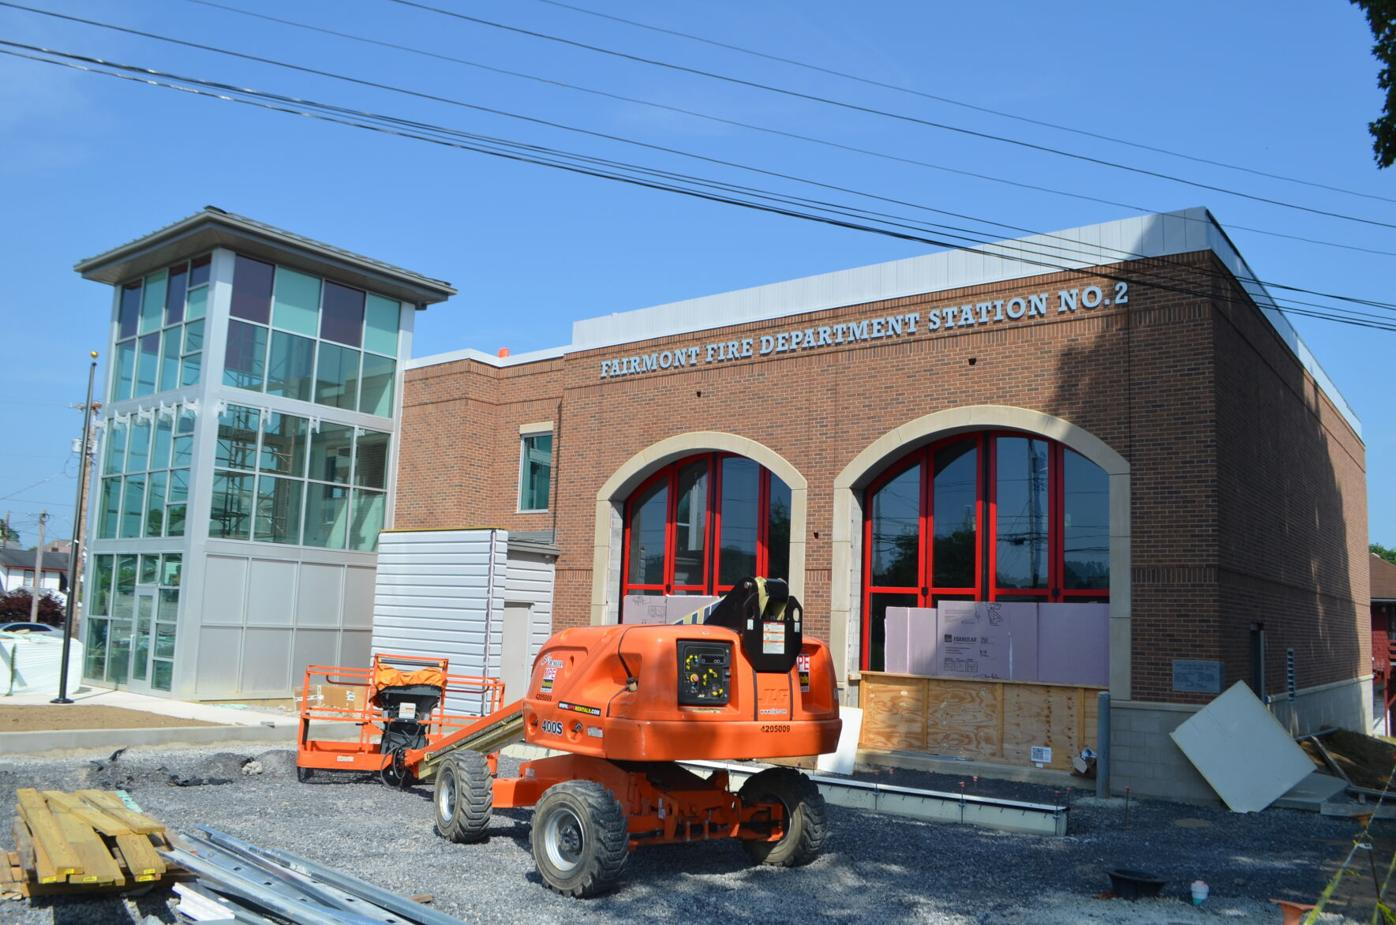 New east side fire station - July 2021